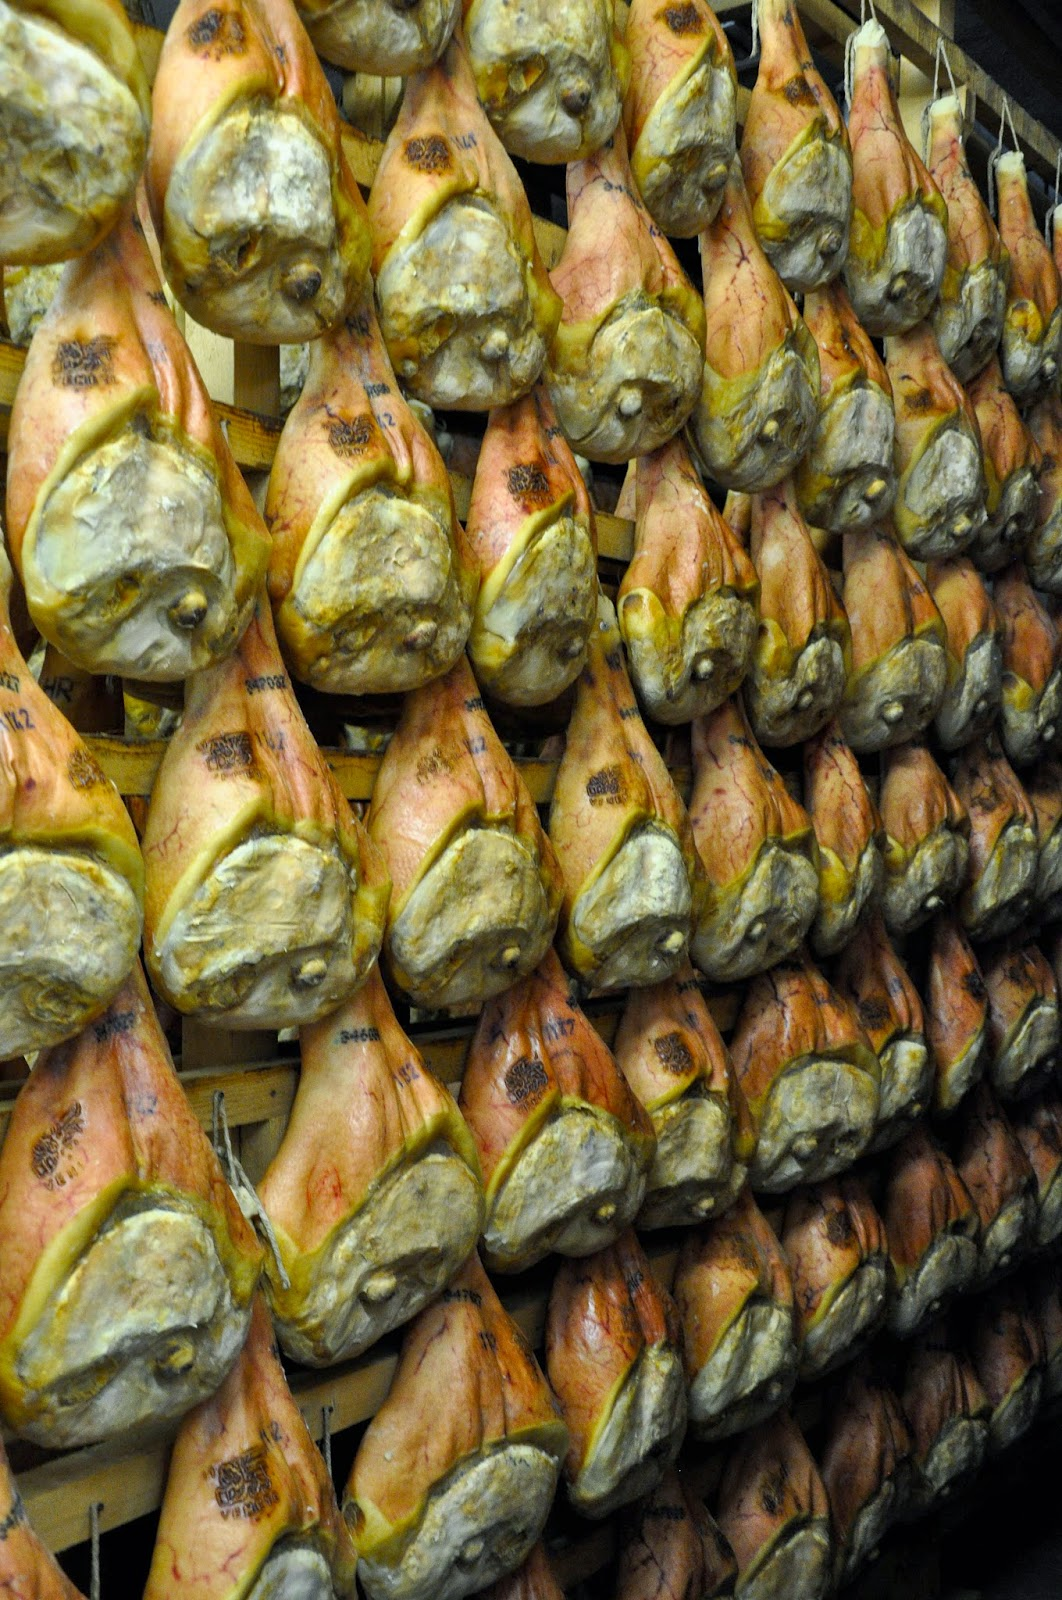 Prosciutto being dry cured